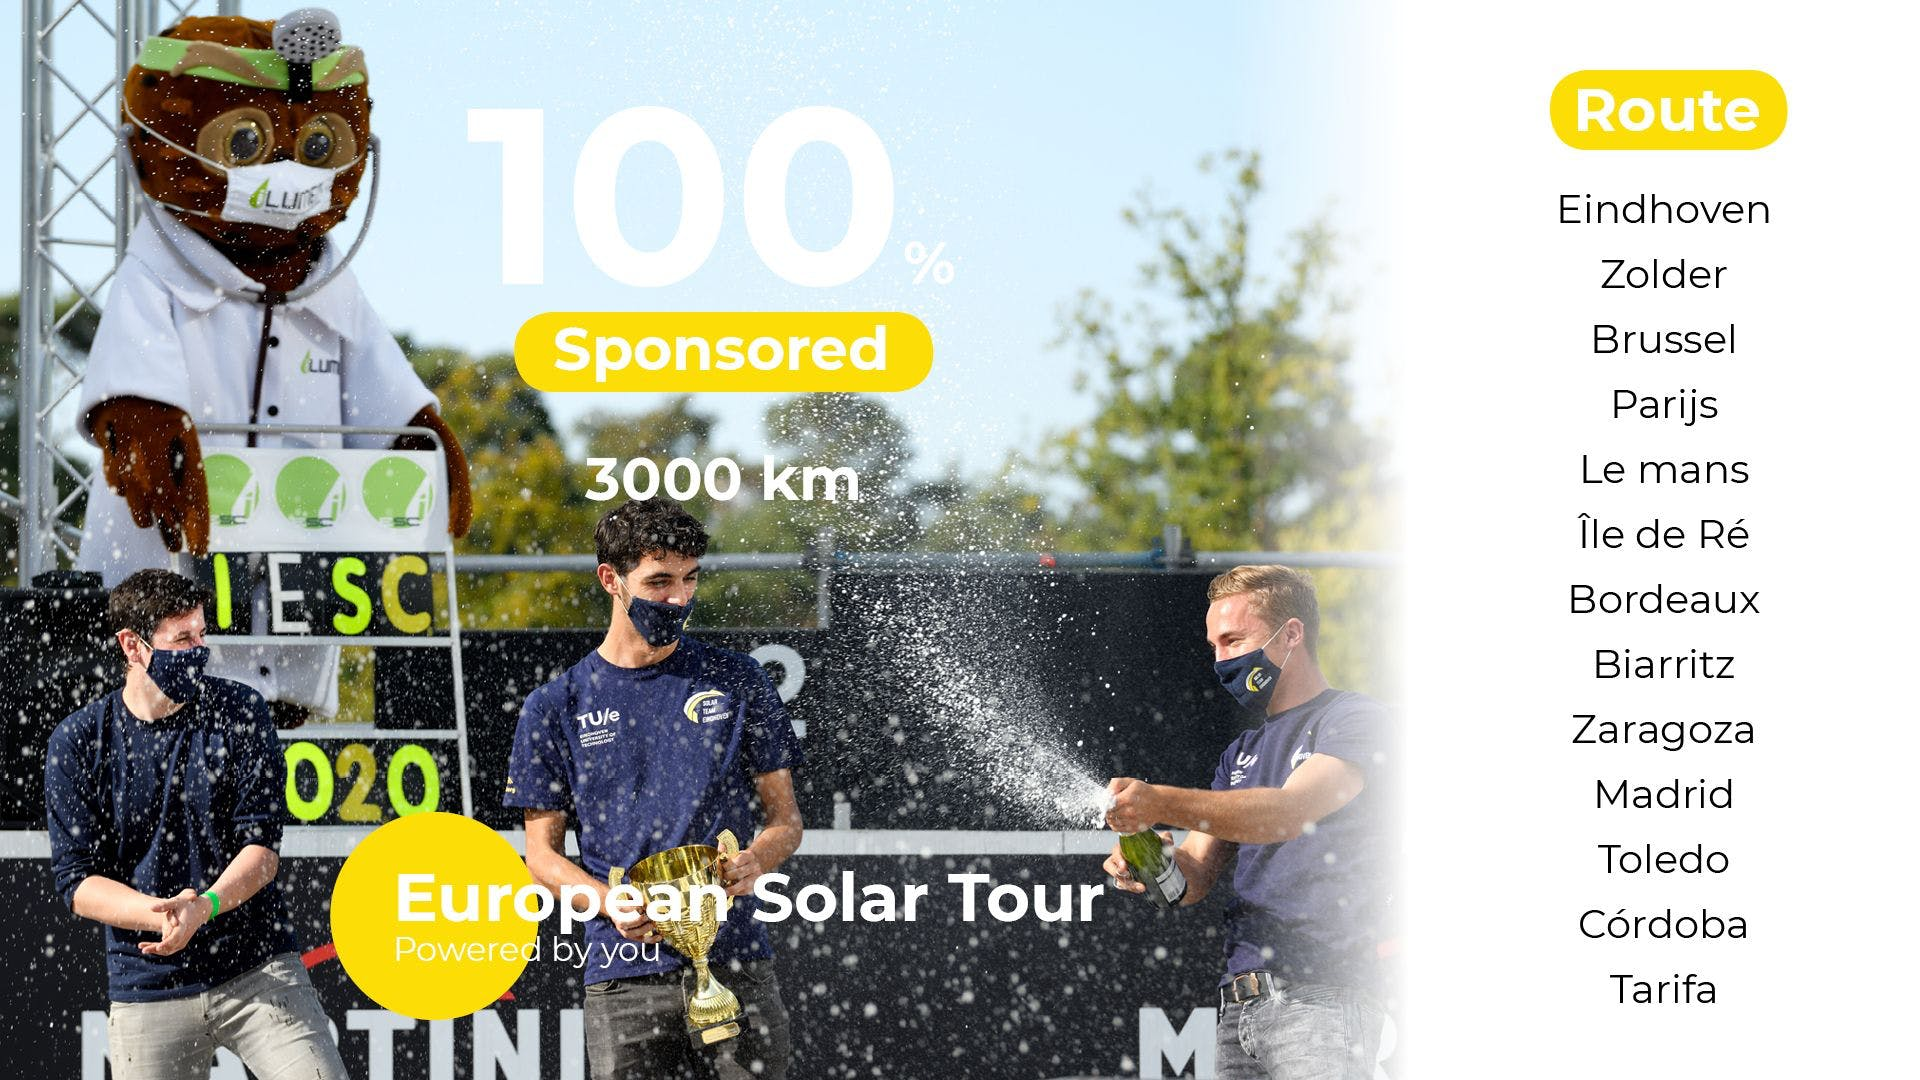 Solar Team Eindhoven goes to the most southern part of Europe, Tarifa